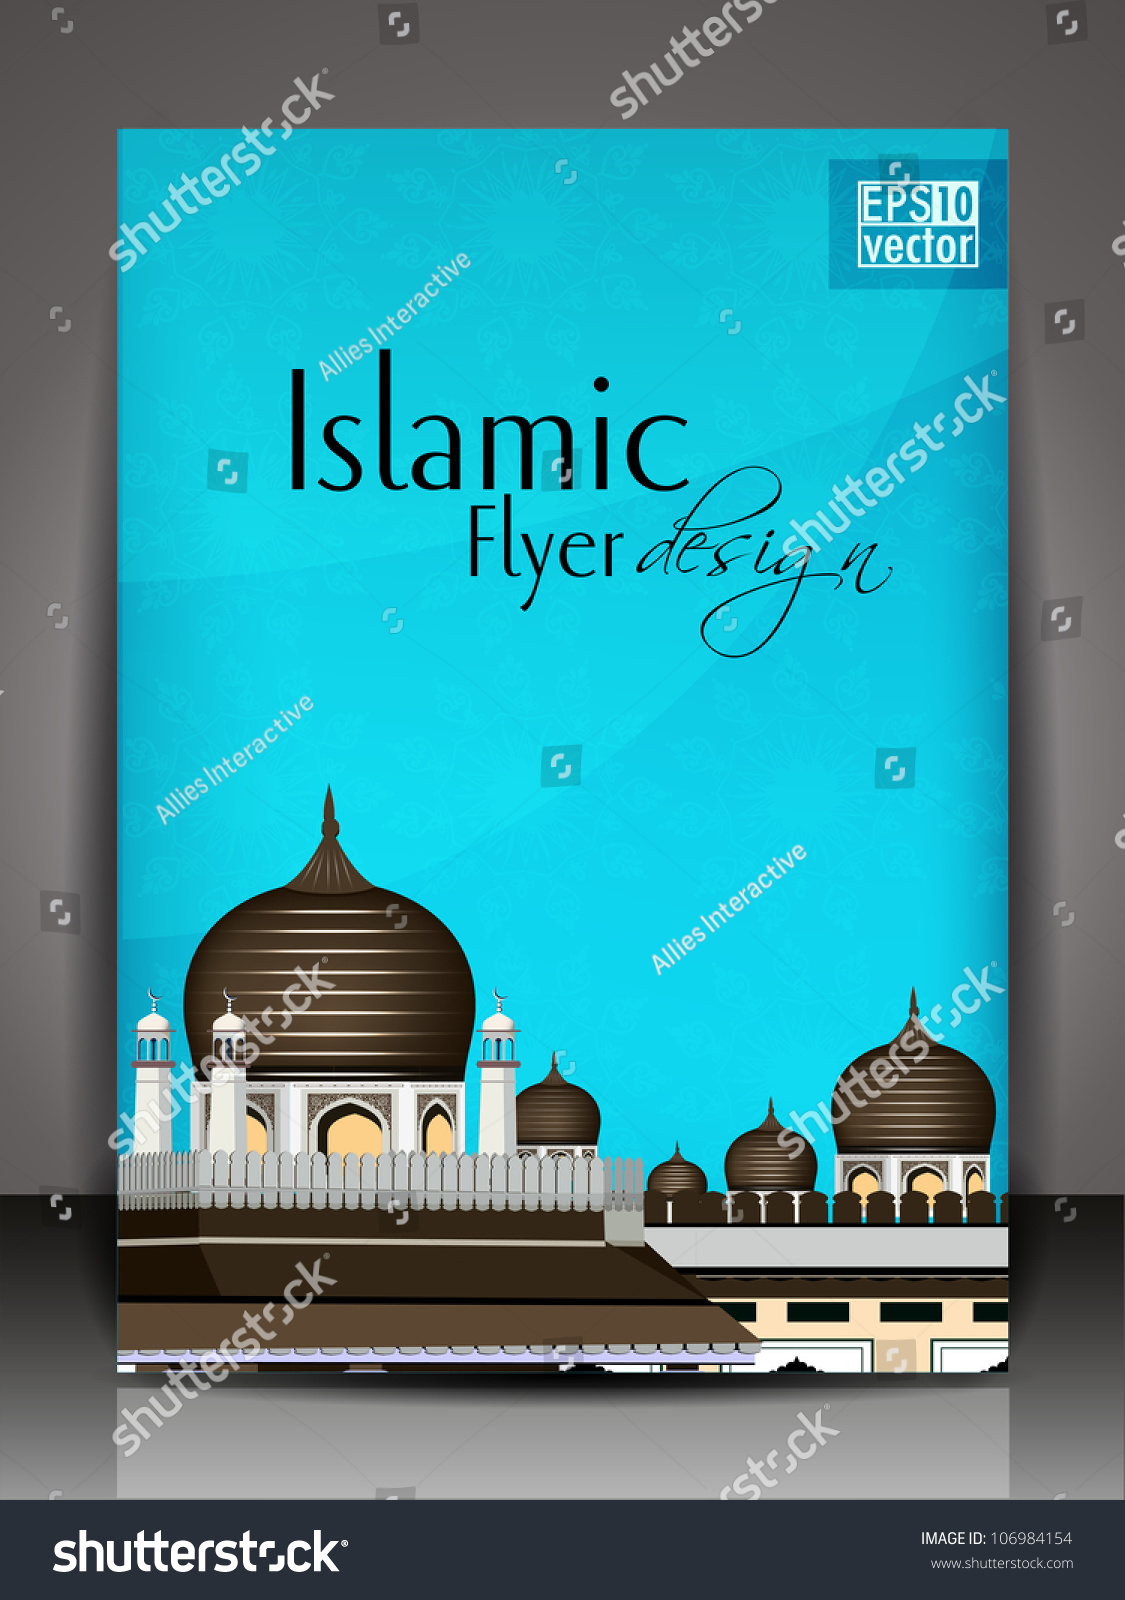 islamic brochure design - islamic flyer brochure or cover design with mosque and